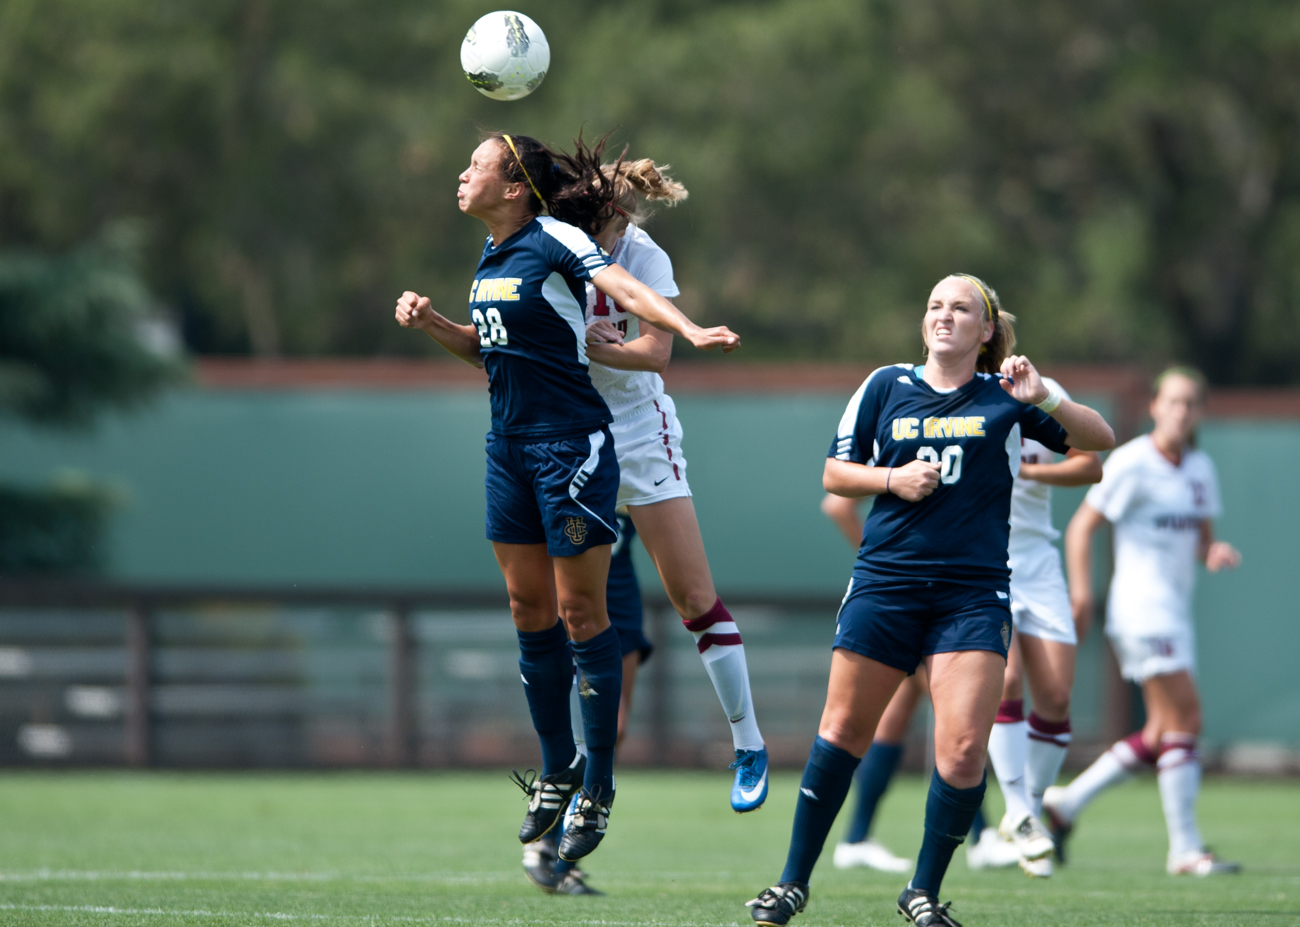 09-11-11_Womens_Soccer_ICO_Stanford_Roeder_34